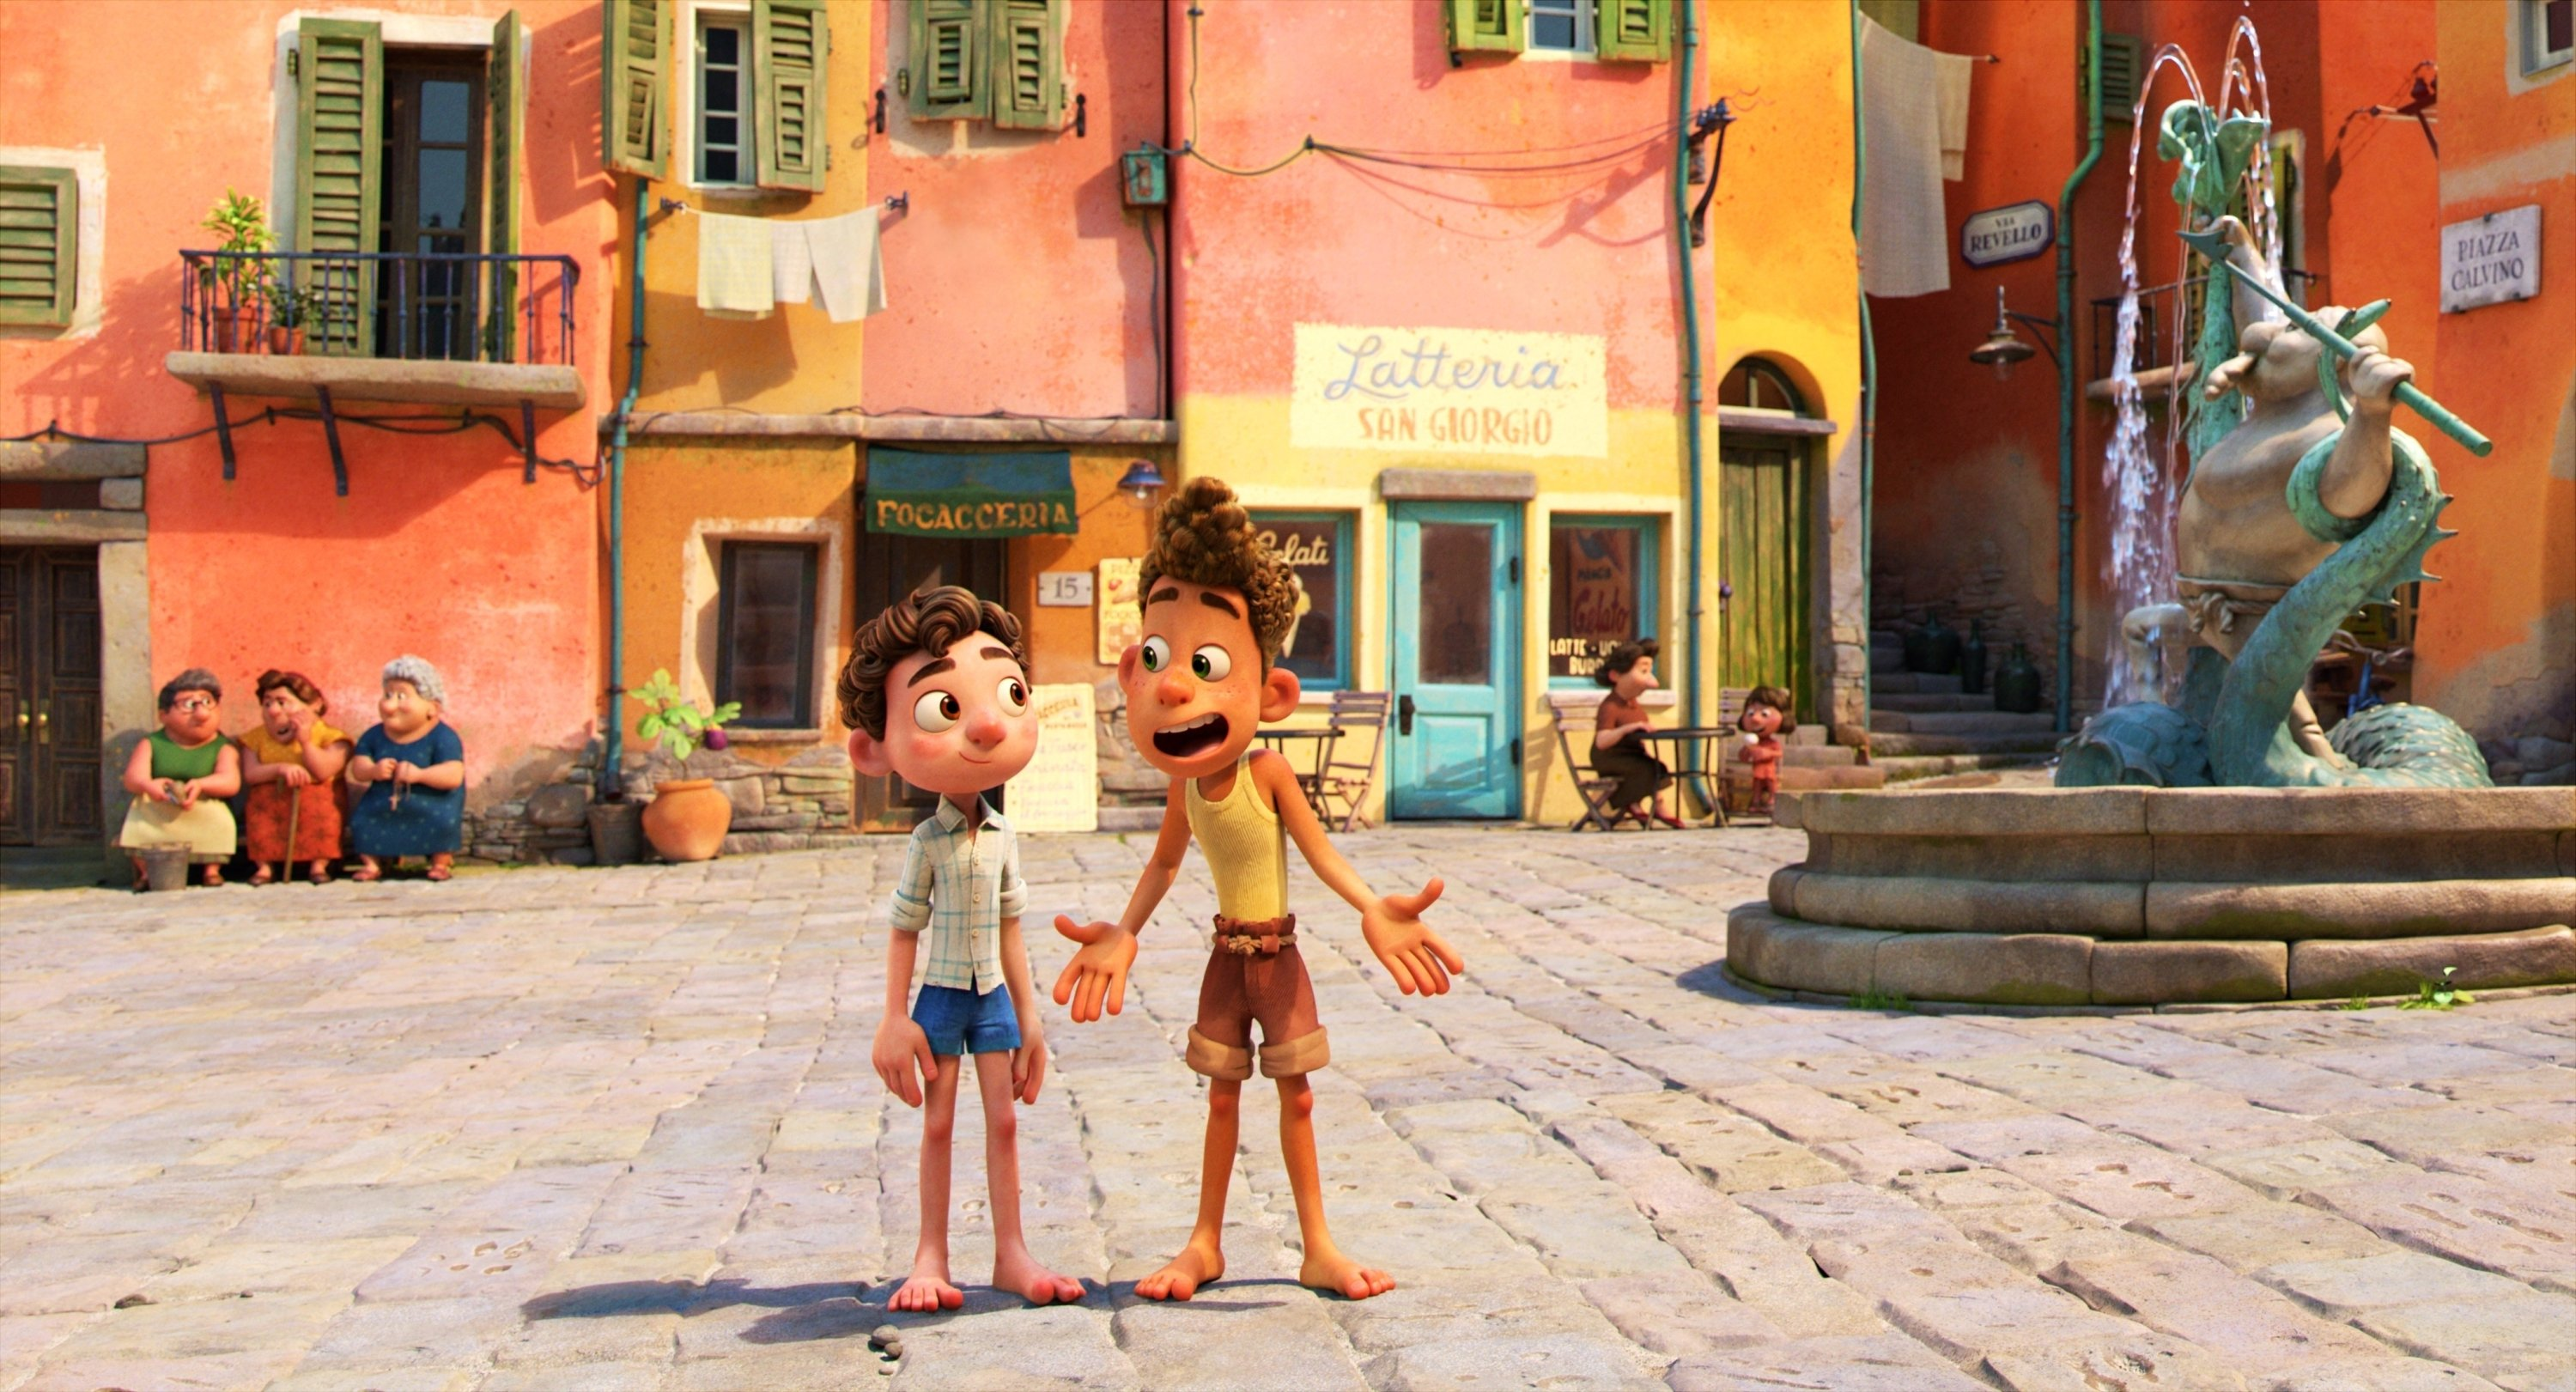 Alberto, voiced by Jack Dylan Grazer (R), and Luca, voiced by Jacob Tremblay walk in a public square in a scene from the animated film 'Luca.' (Photo by Disney via AP)